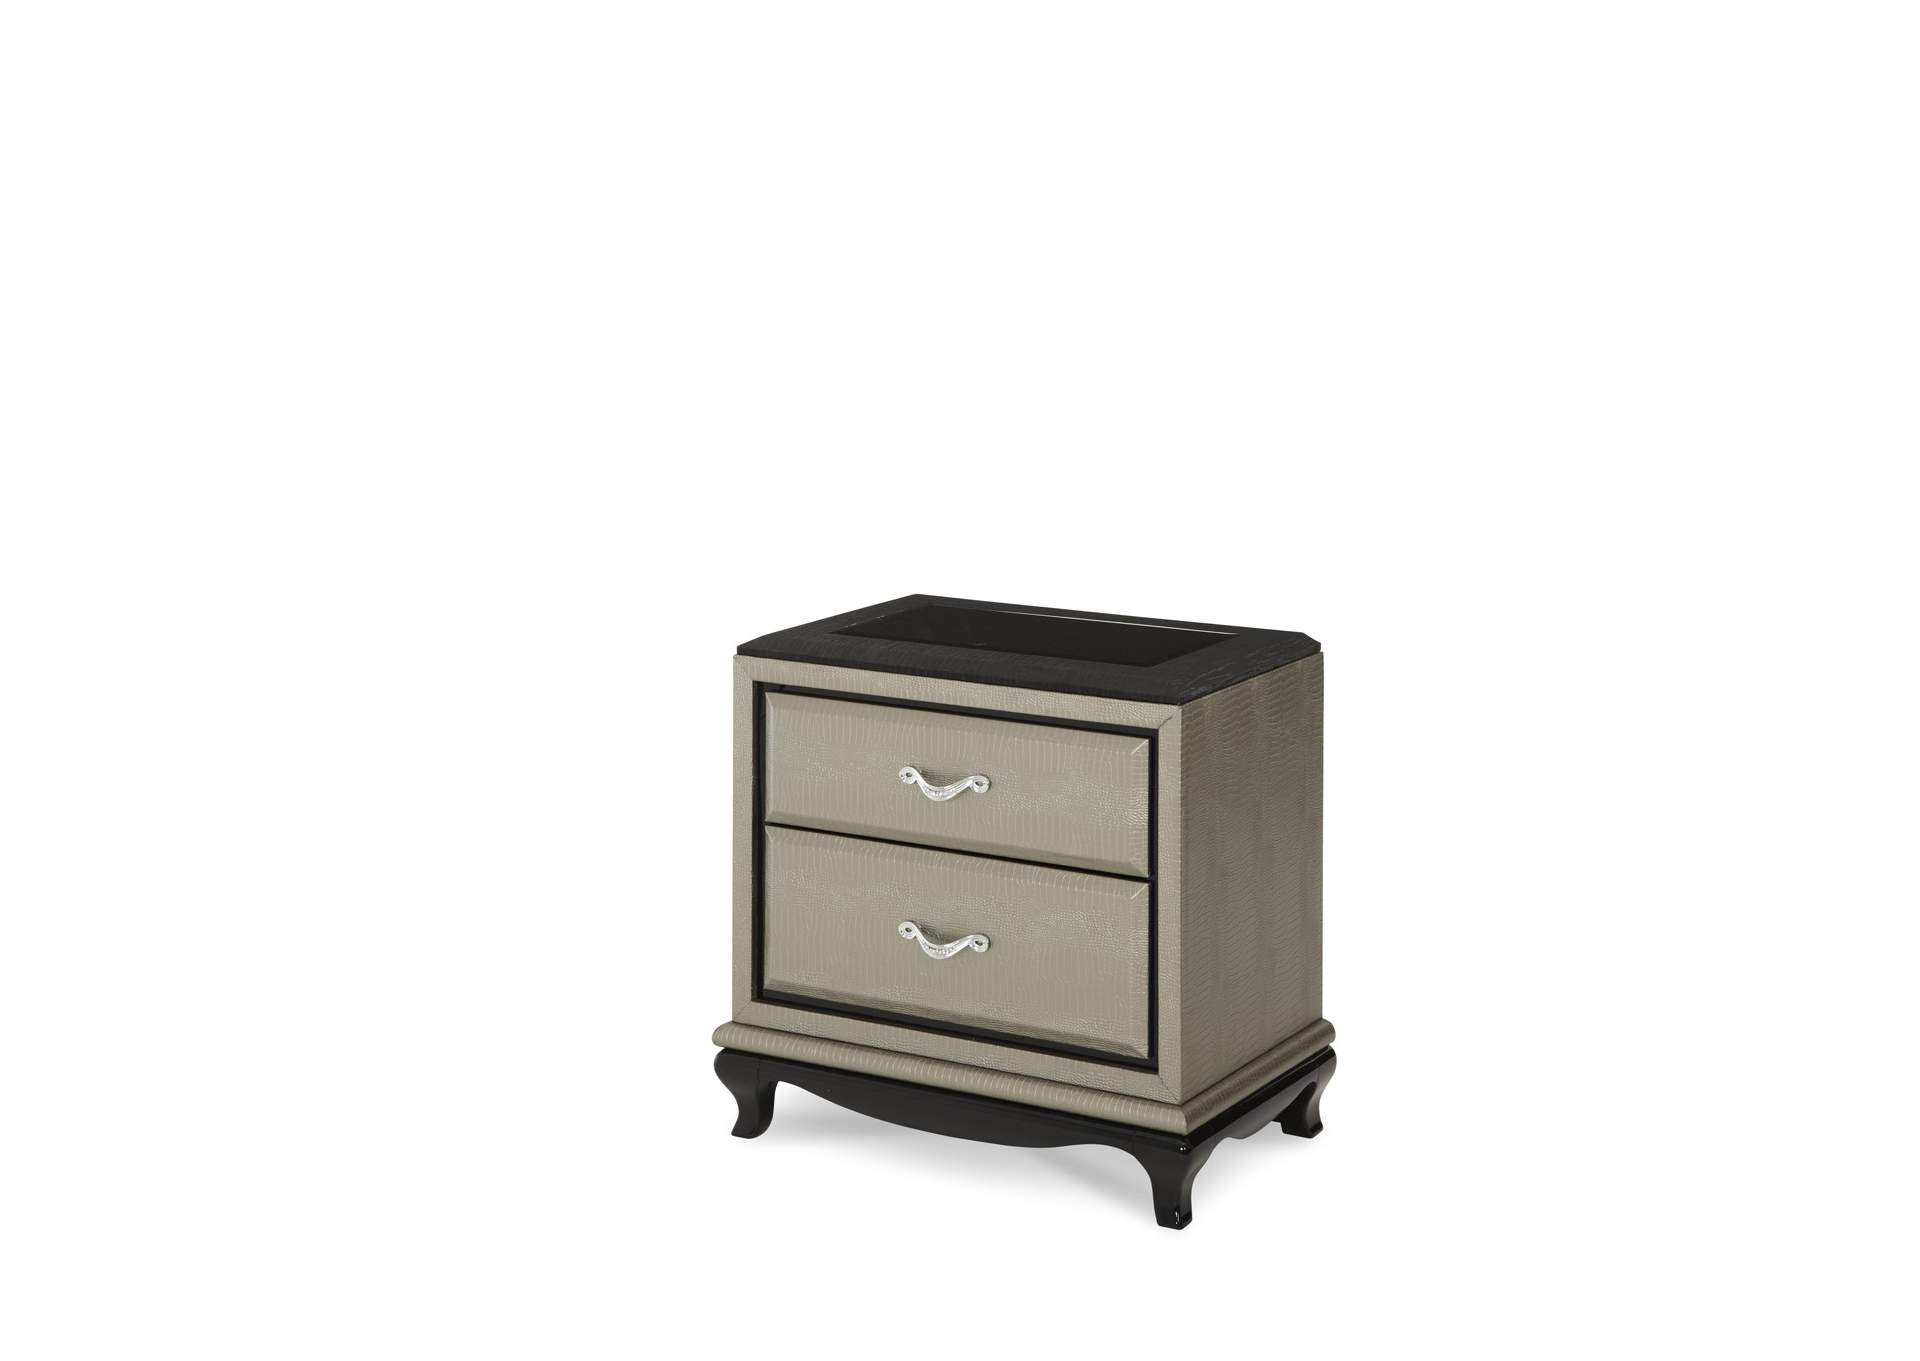 After Eight Titanium Nightstand,AICO